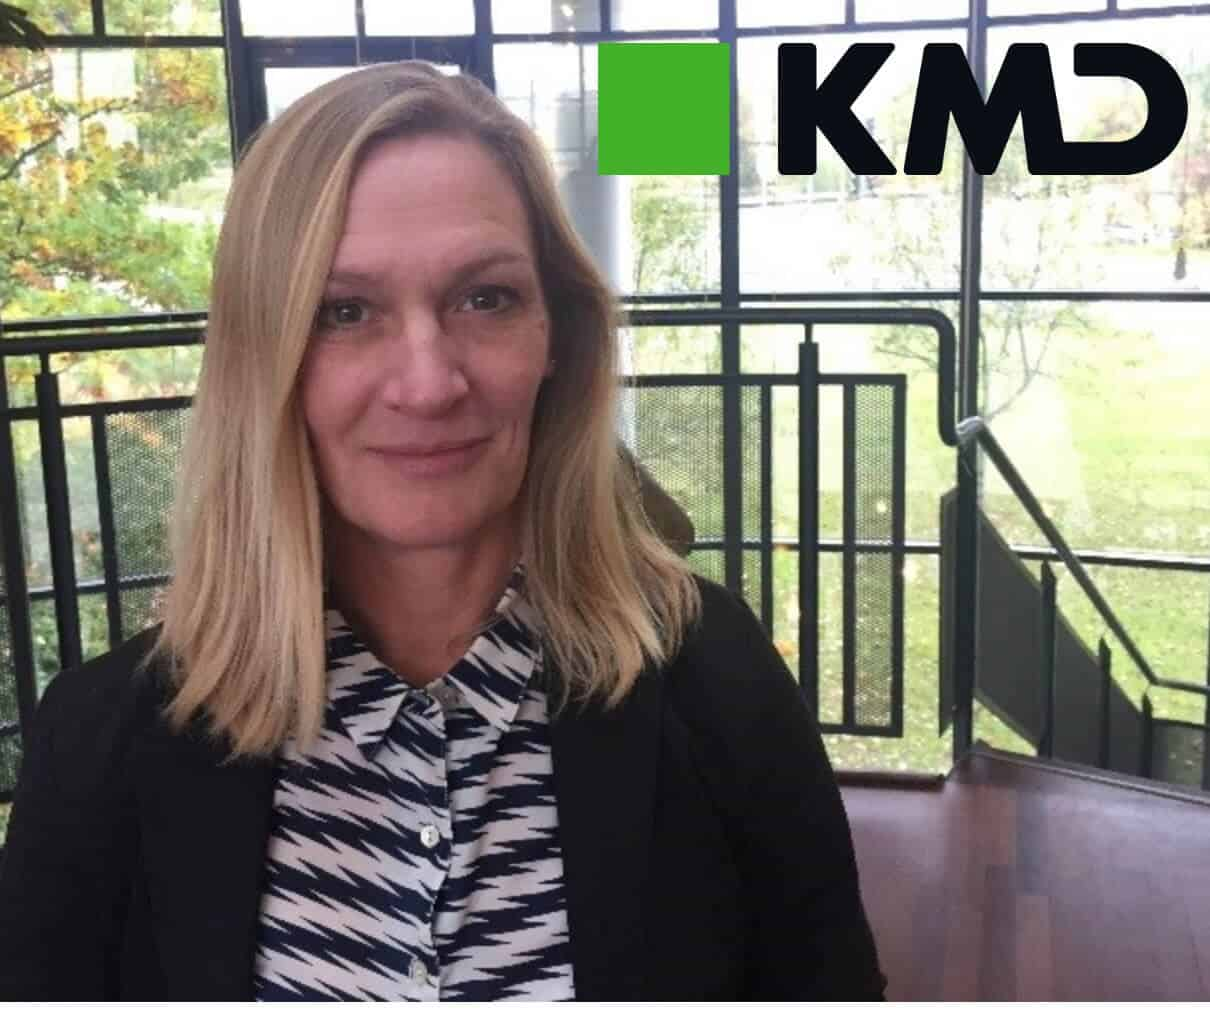 KMD – About their decision to outsource translation and their choice of translation agency.